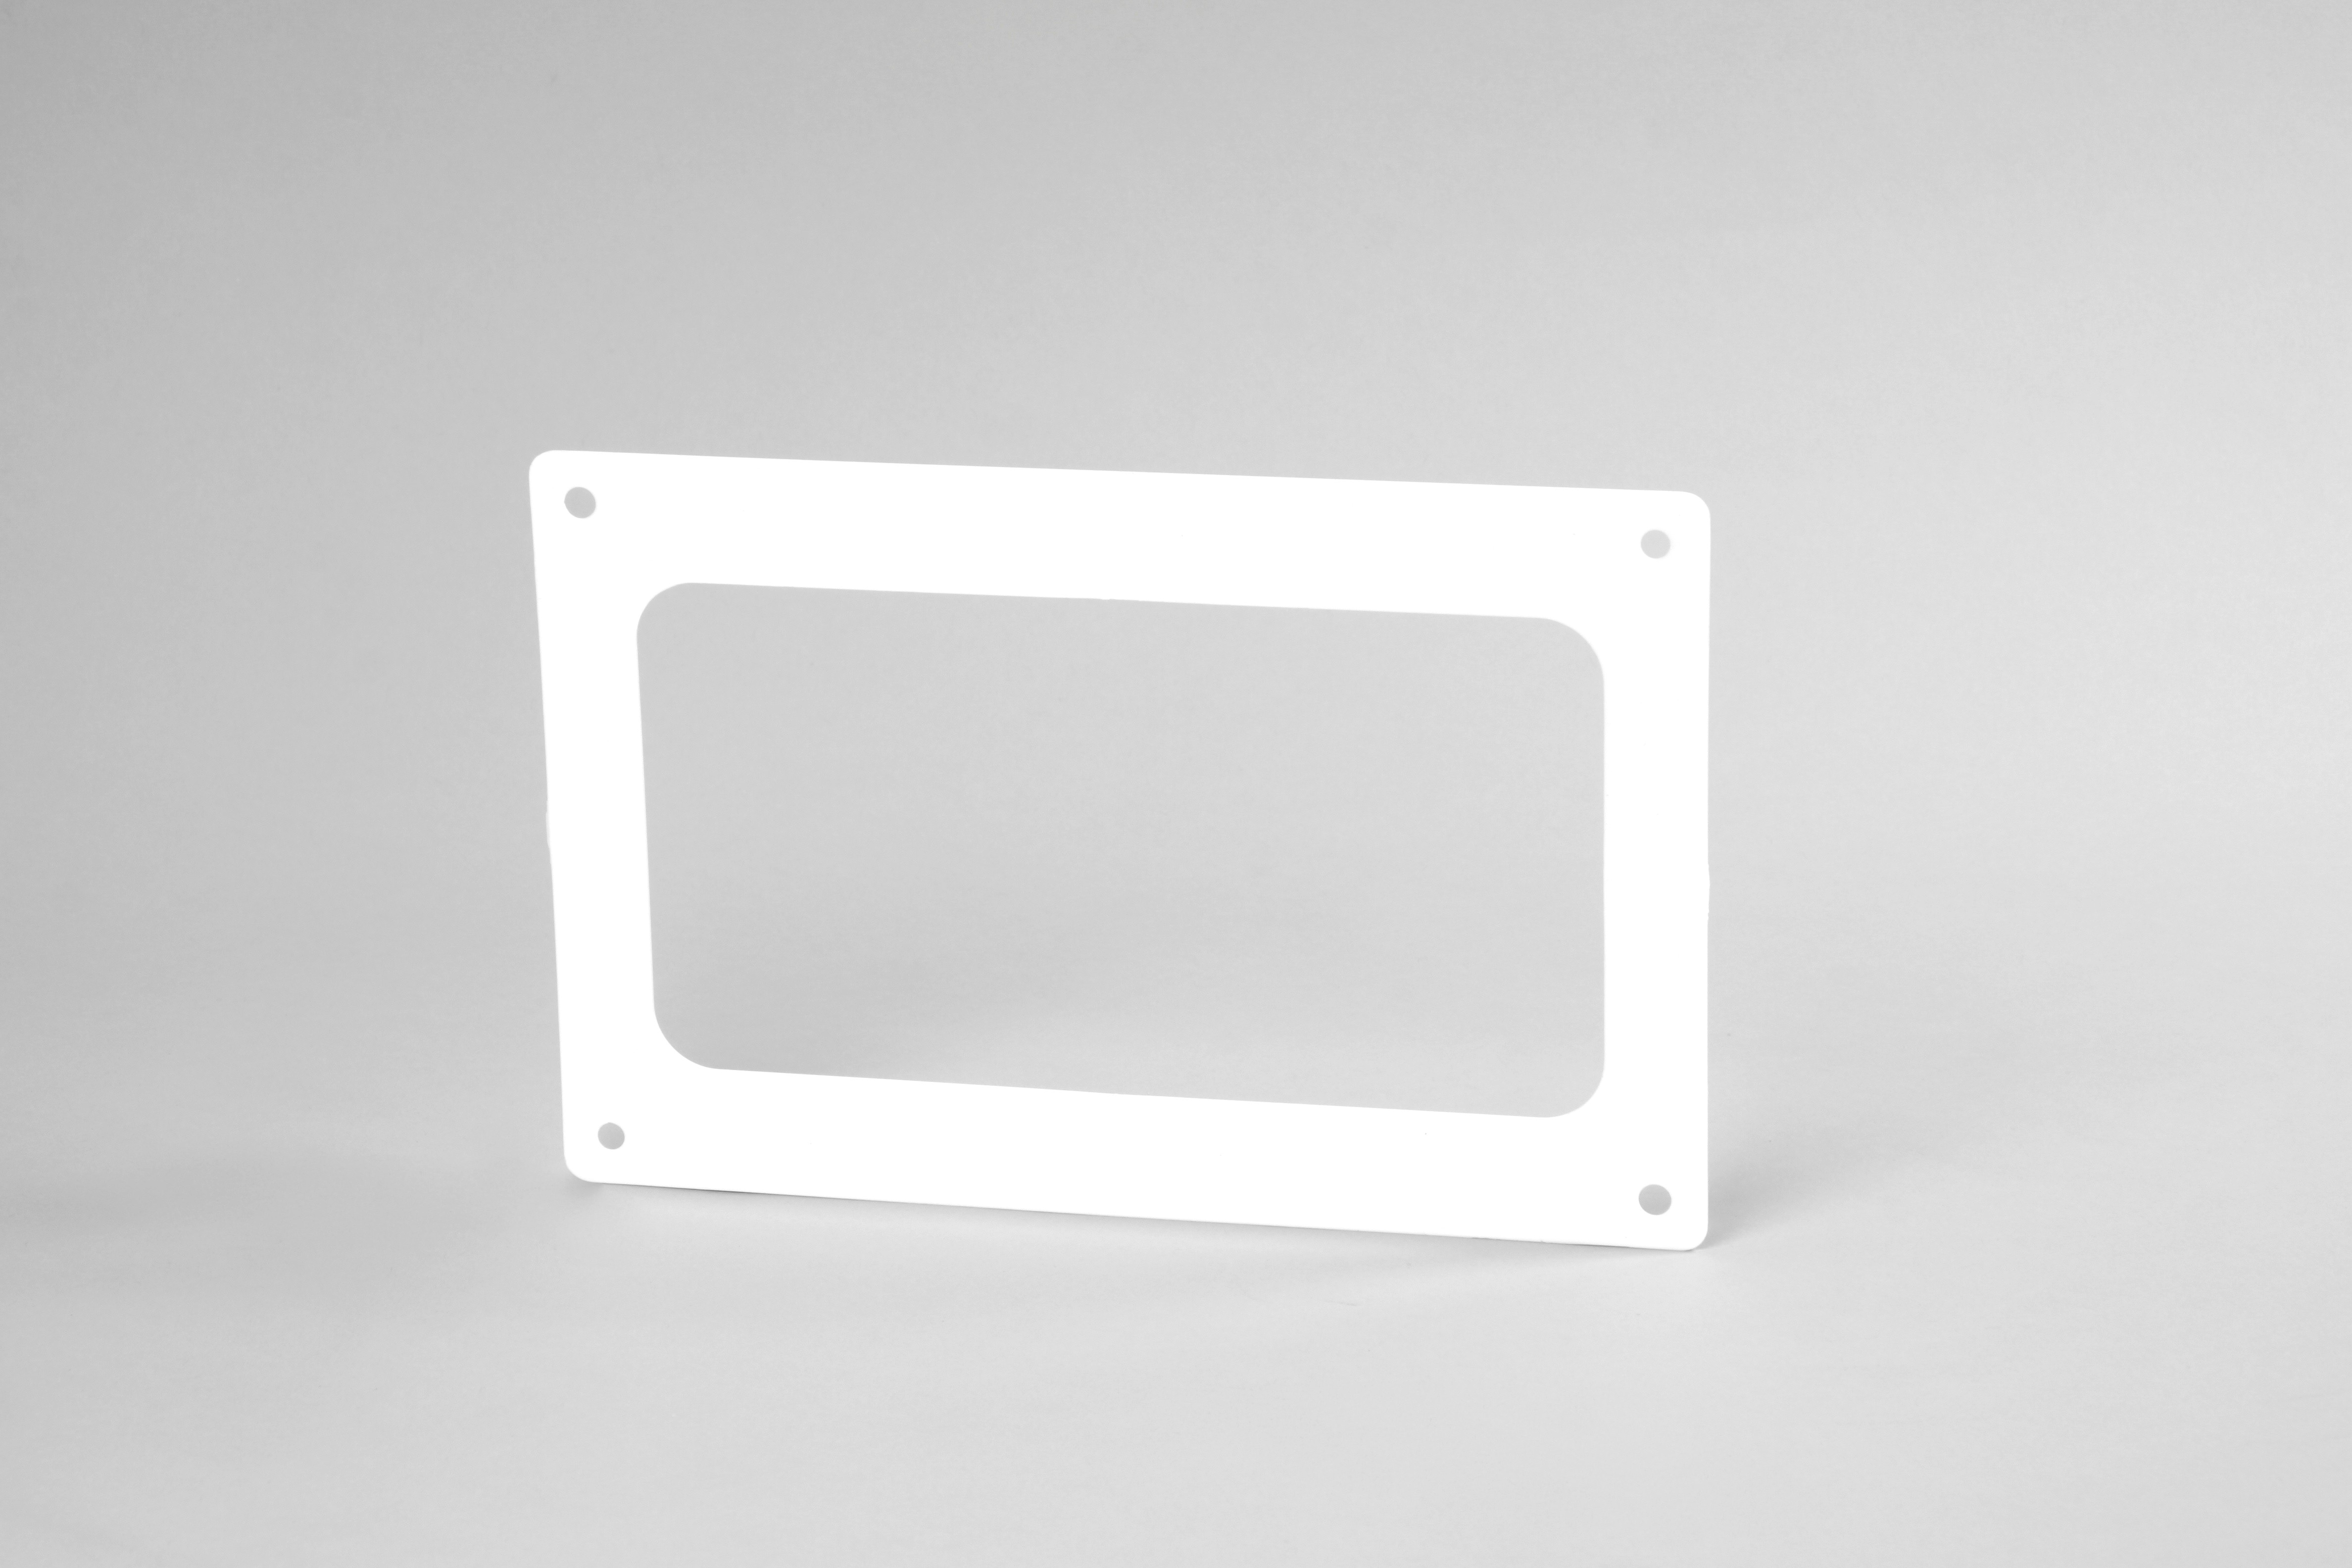 Flat wall plate 180mm x 95mm ducting